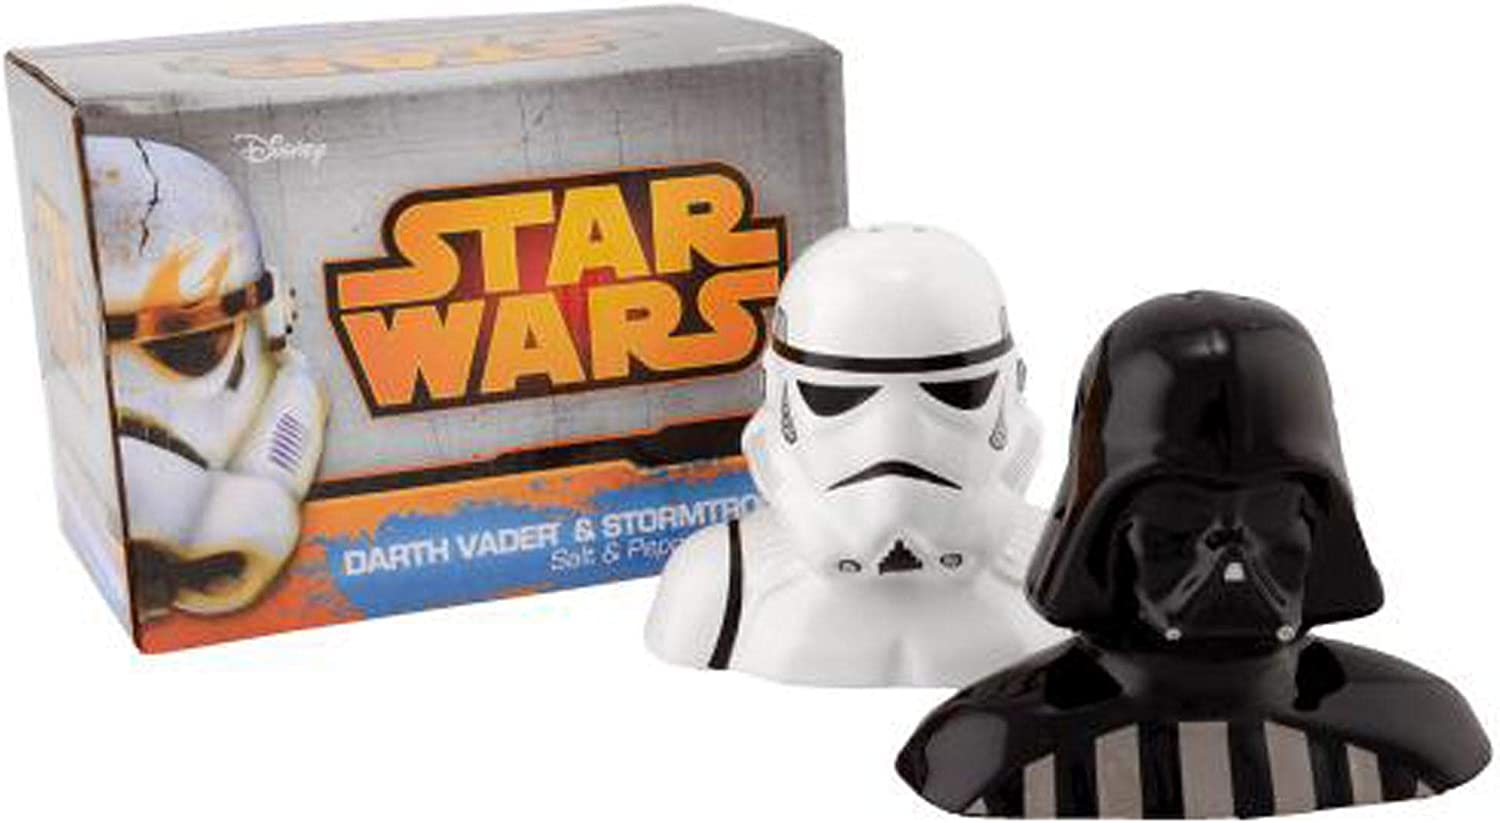 Star Wars Darth Vader and Storm Trooper Salt and Pepper Shaker Set - Movie Home and Office